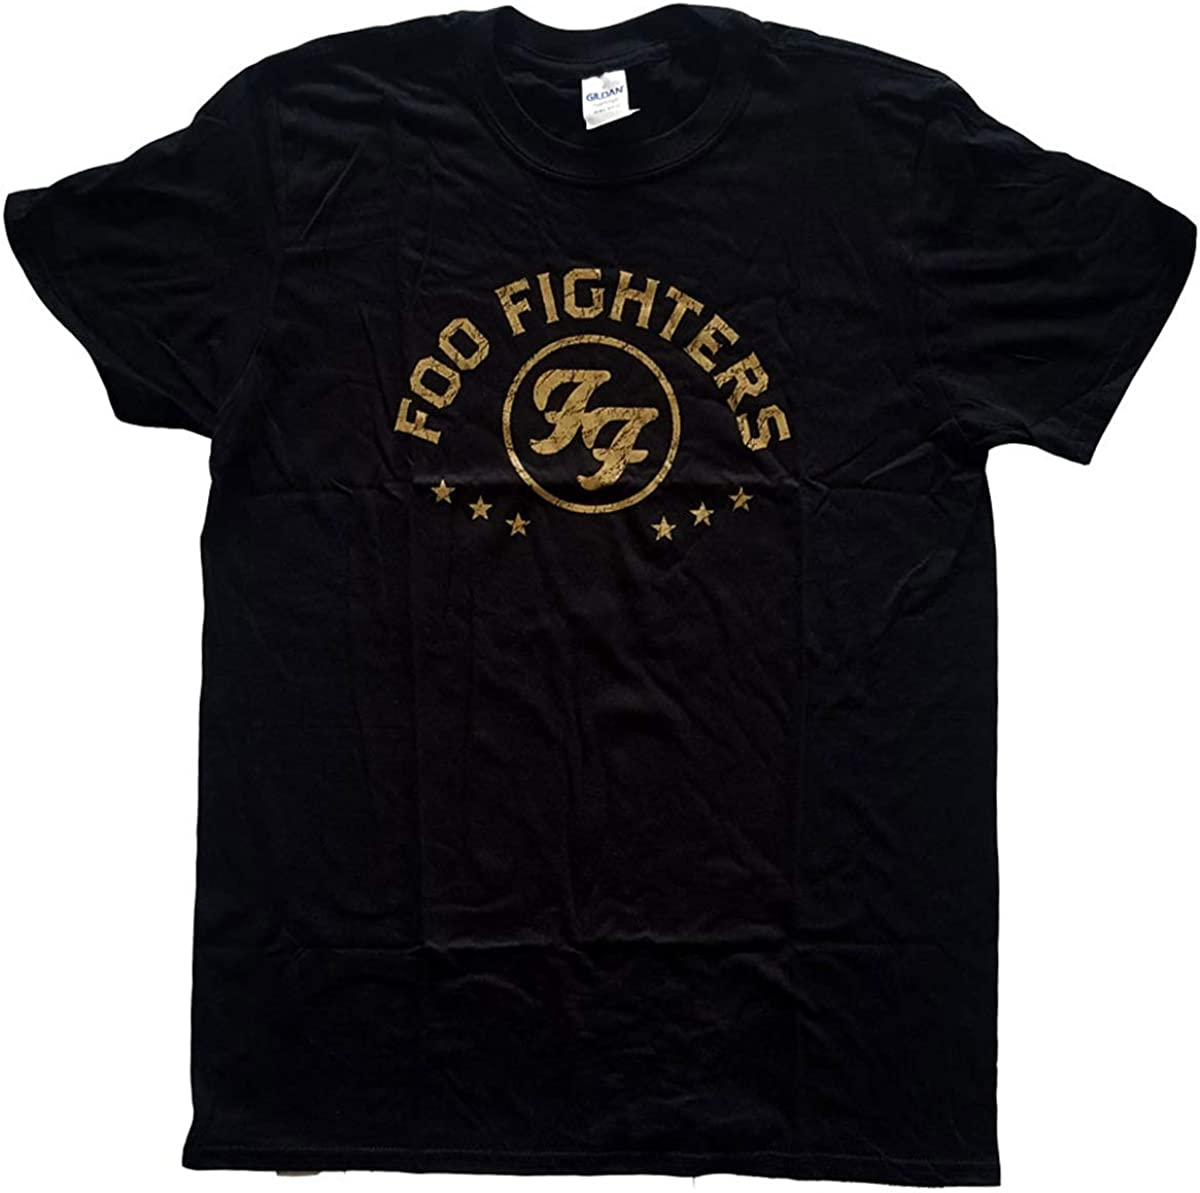 Foo Fighters Arched Star Hombre Camiseta Negro, Regular